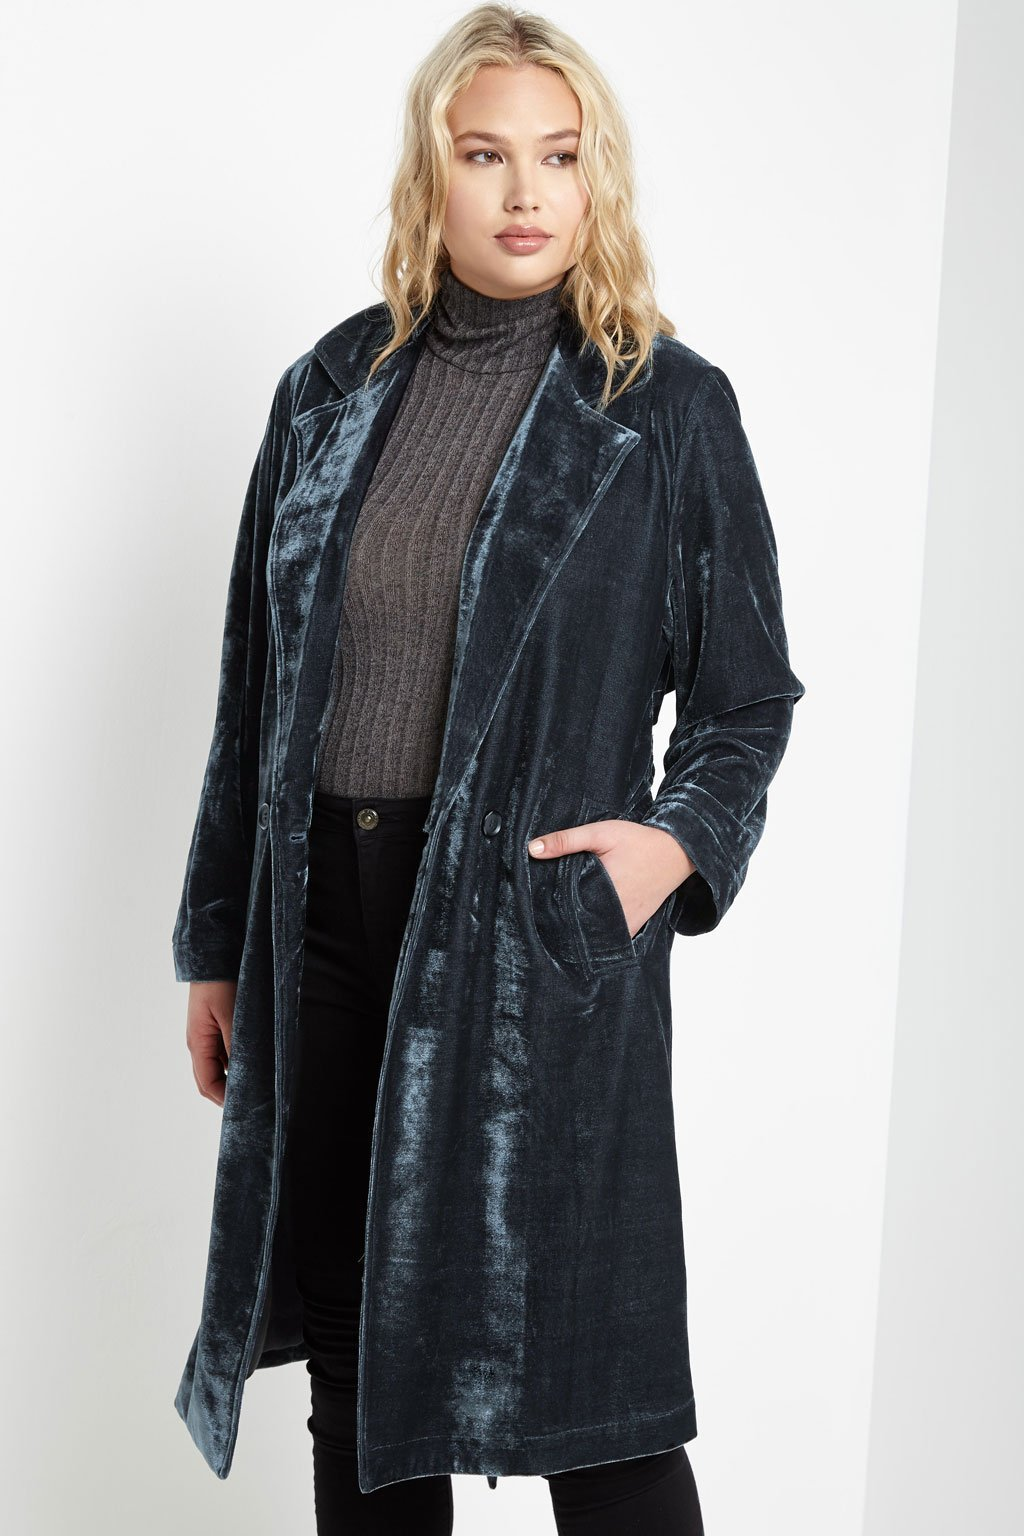 Contemporary Velvet Duster Jacket Plus Size Duster